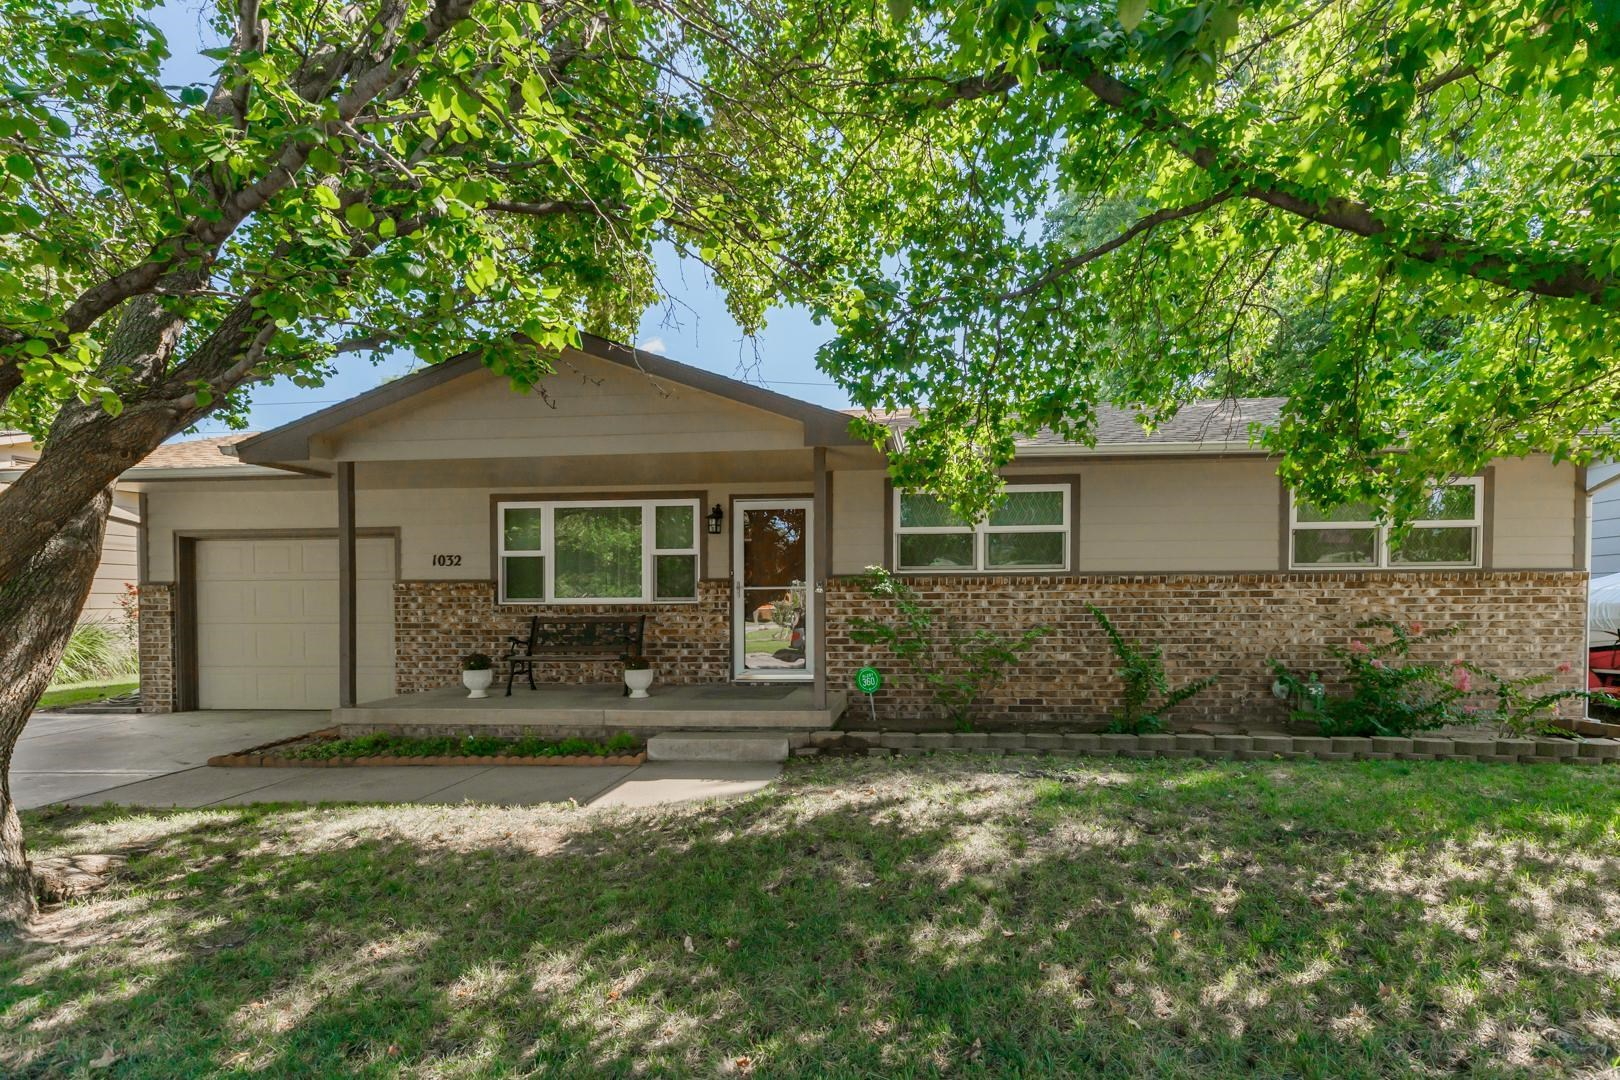 MOVE IN READY...Adorable 3 bedroom / 2 bathroom home needs a loving family.  Your NEW home features: